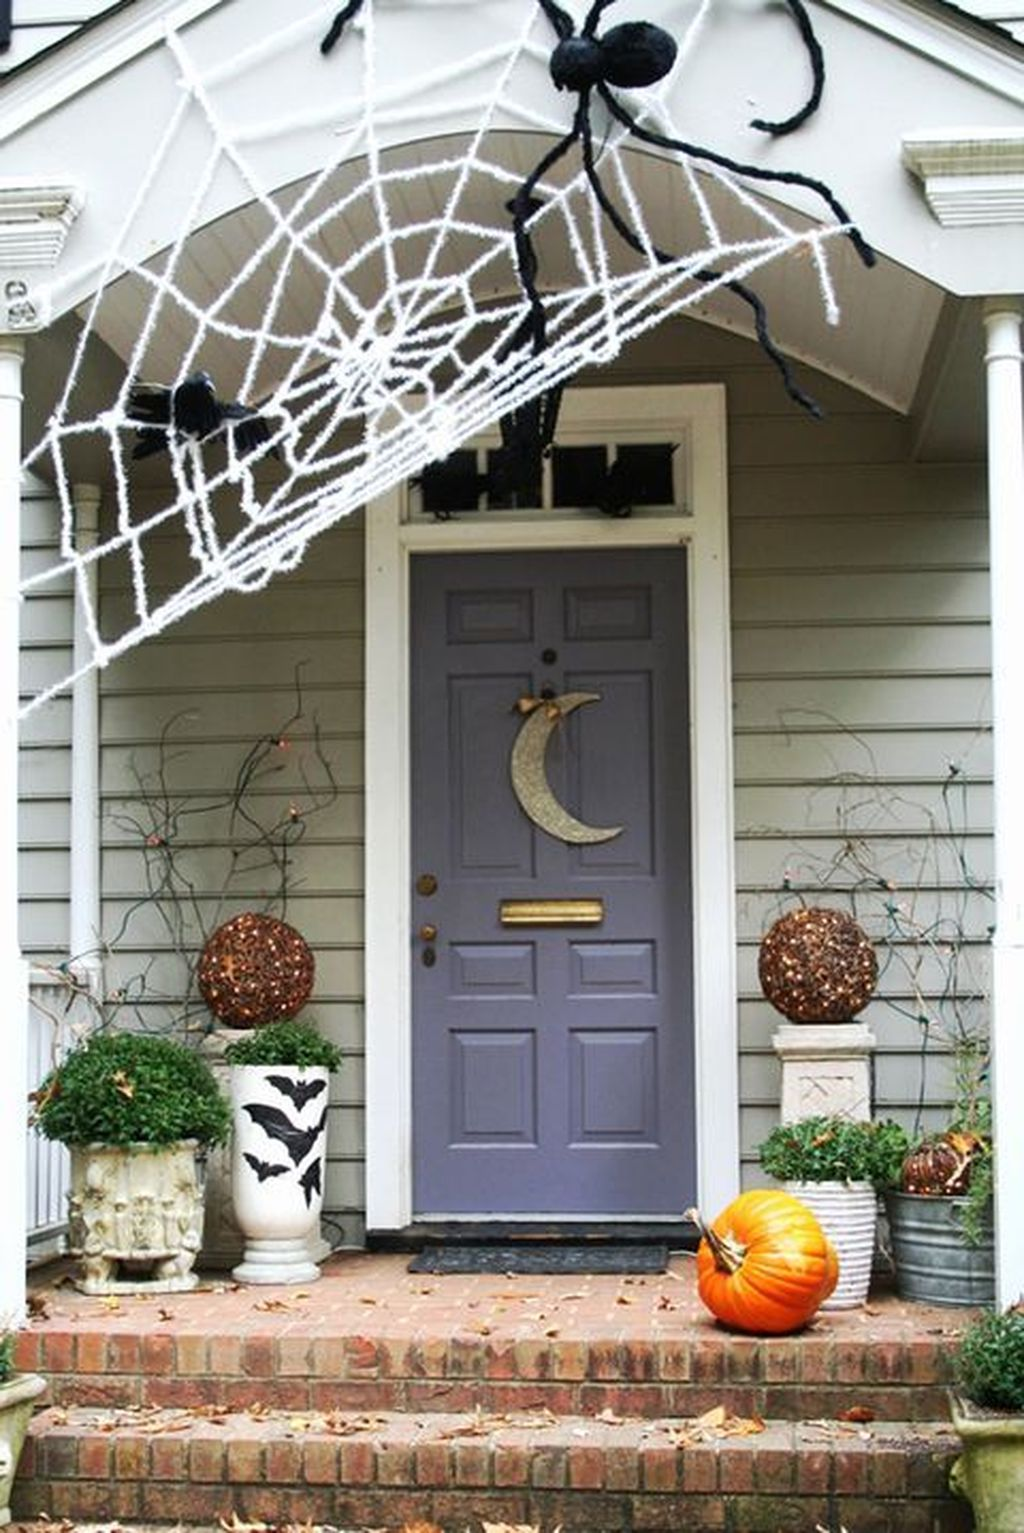 Amazing Halloween Outdoor Decorations Ideas 16